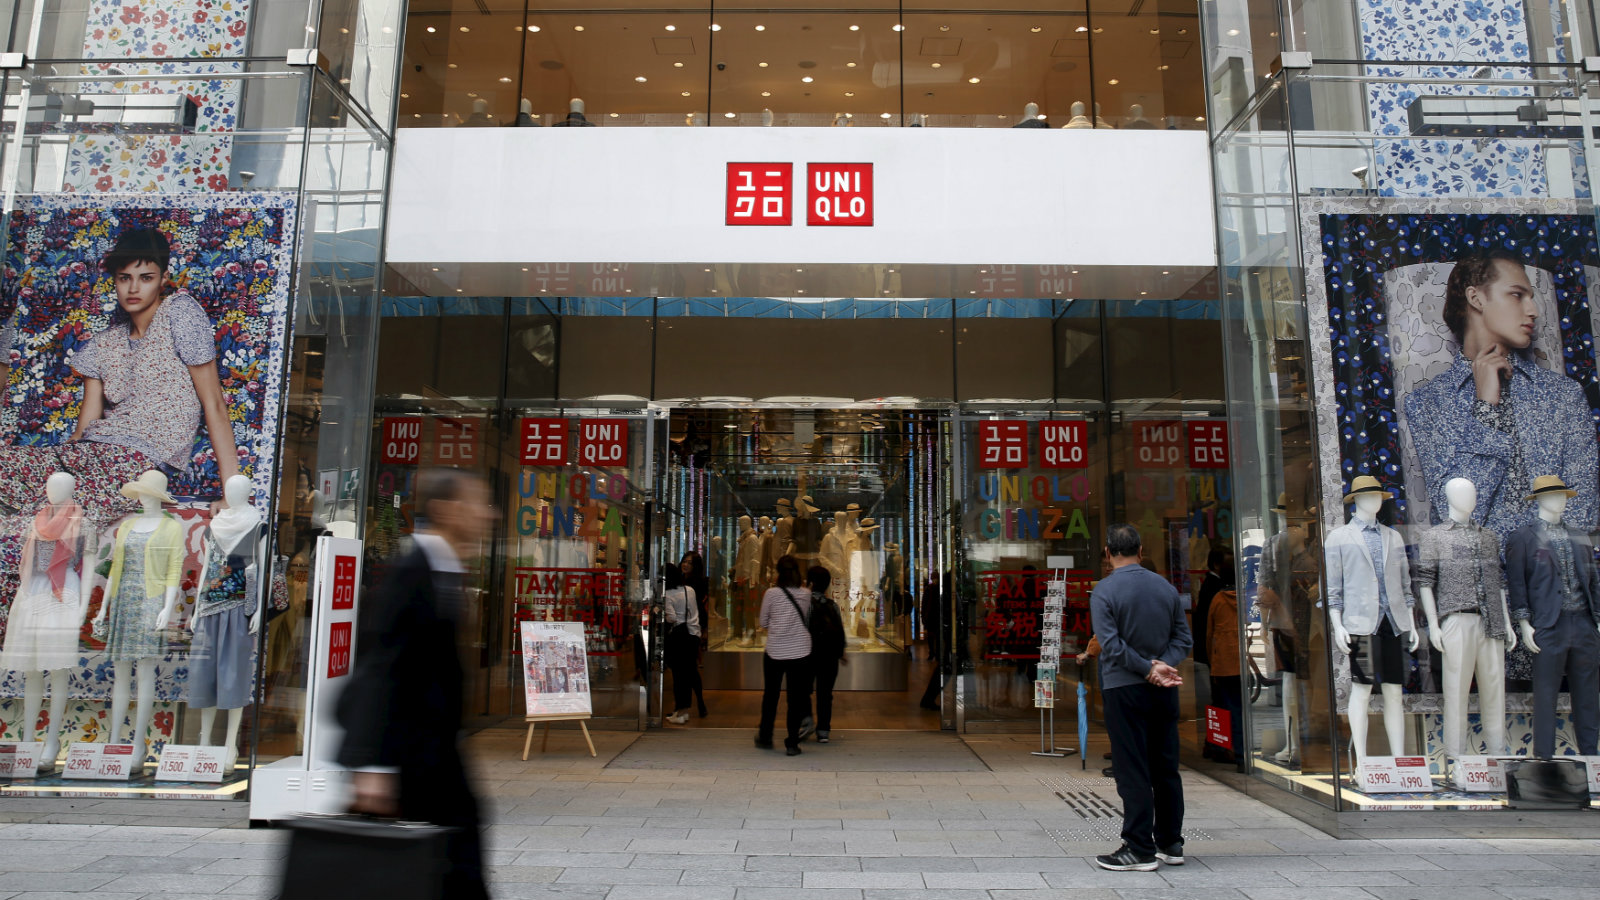 A man stands in front of a Fast Retailing's Uniqlo store in Tokyo, Japan, April 6, 2016. Picture taken April 6, 2016.